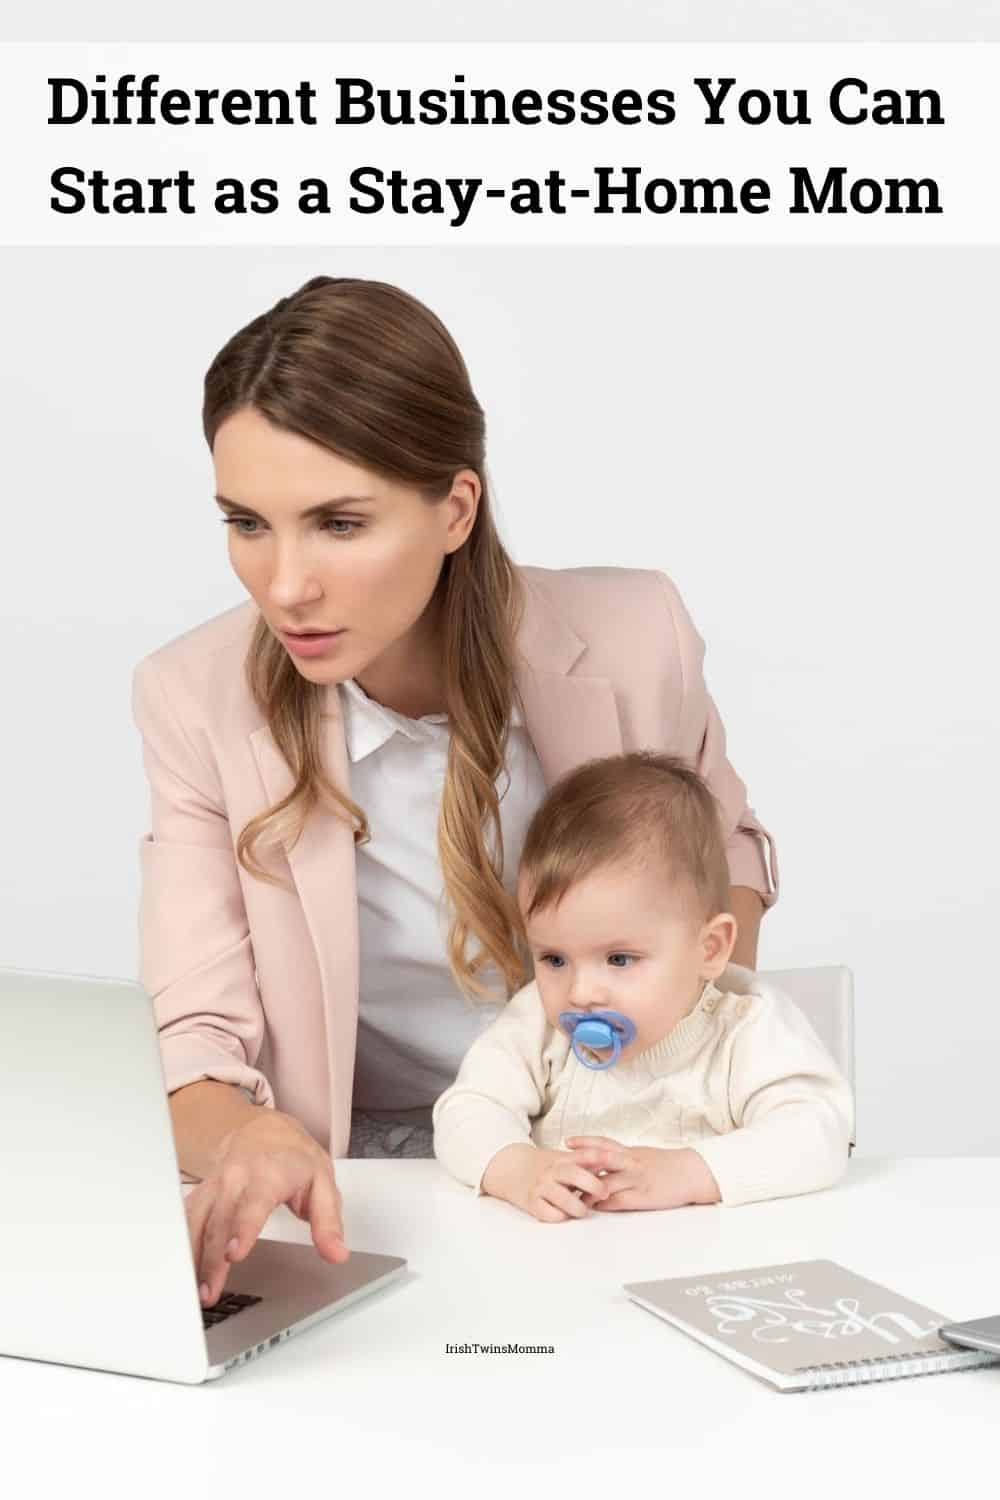 Different Businesses You Can Start as a Stay-at-Home Mom